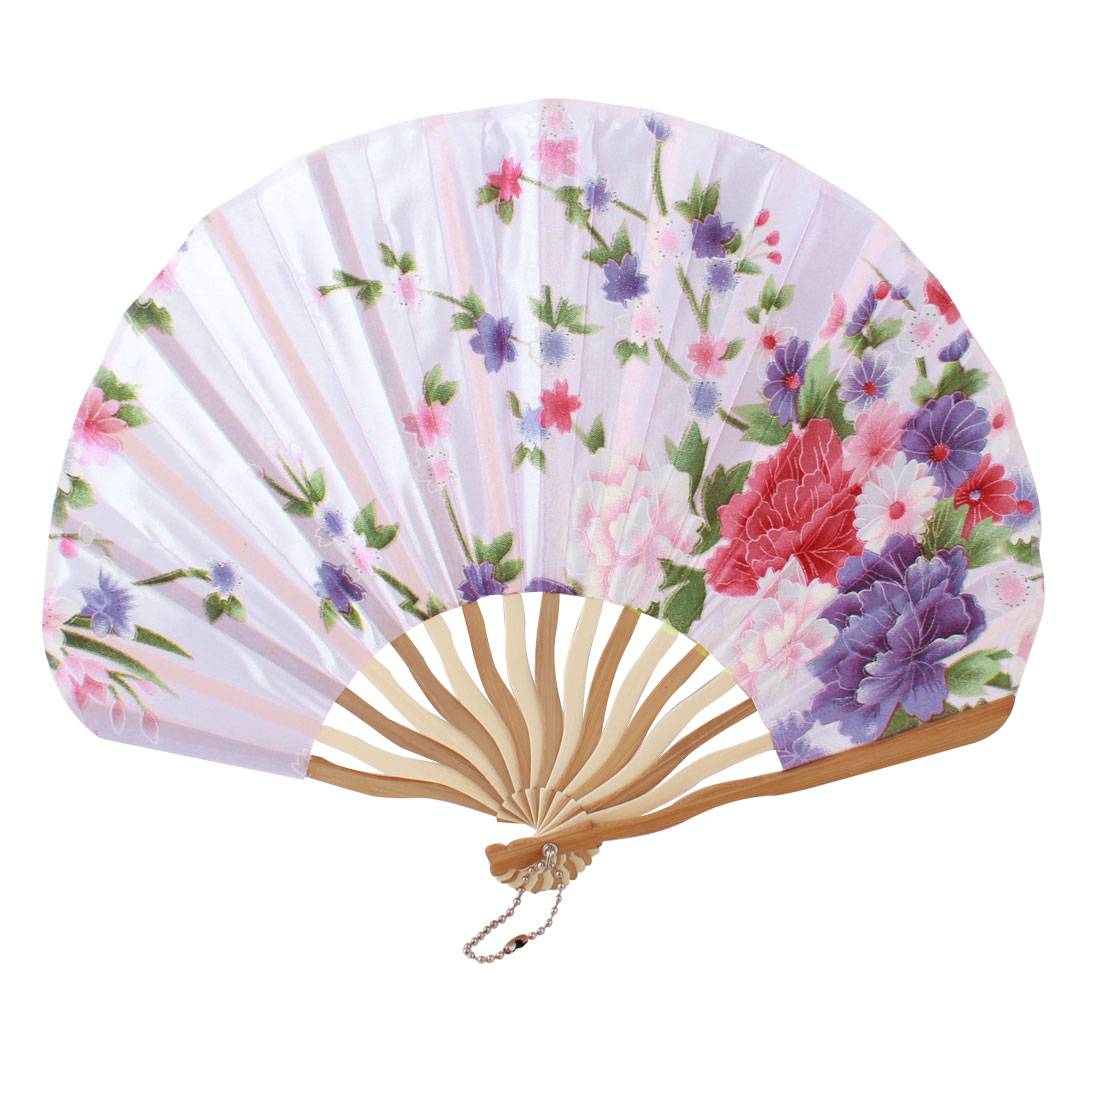 Lady Beige Bamboo Ribs Flower Printed Seashell Shape Folding Hand Fan Pink